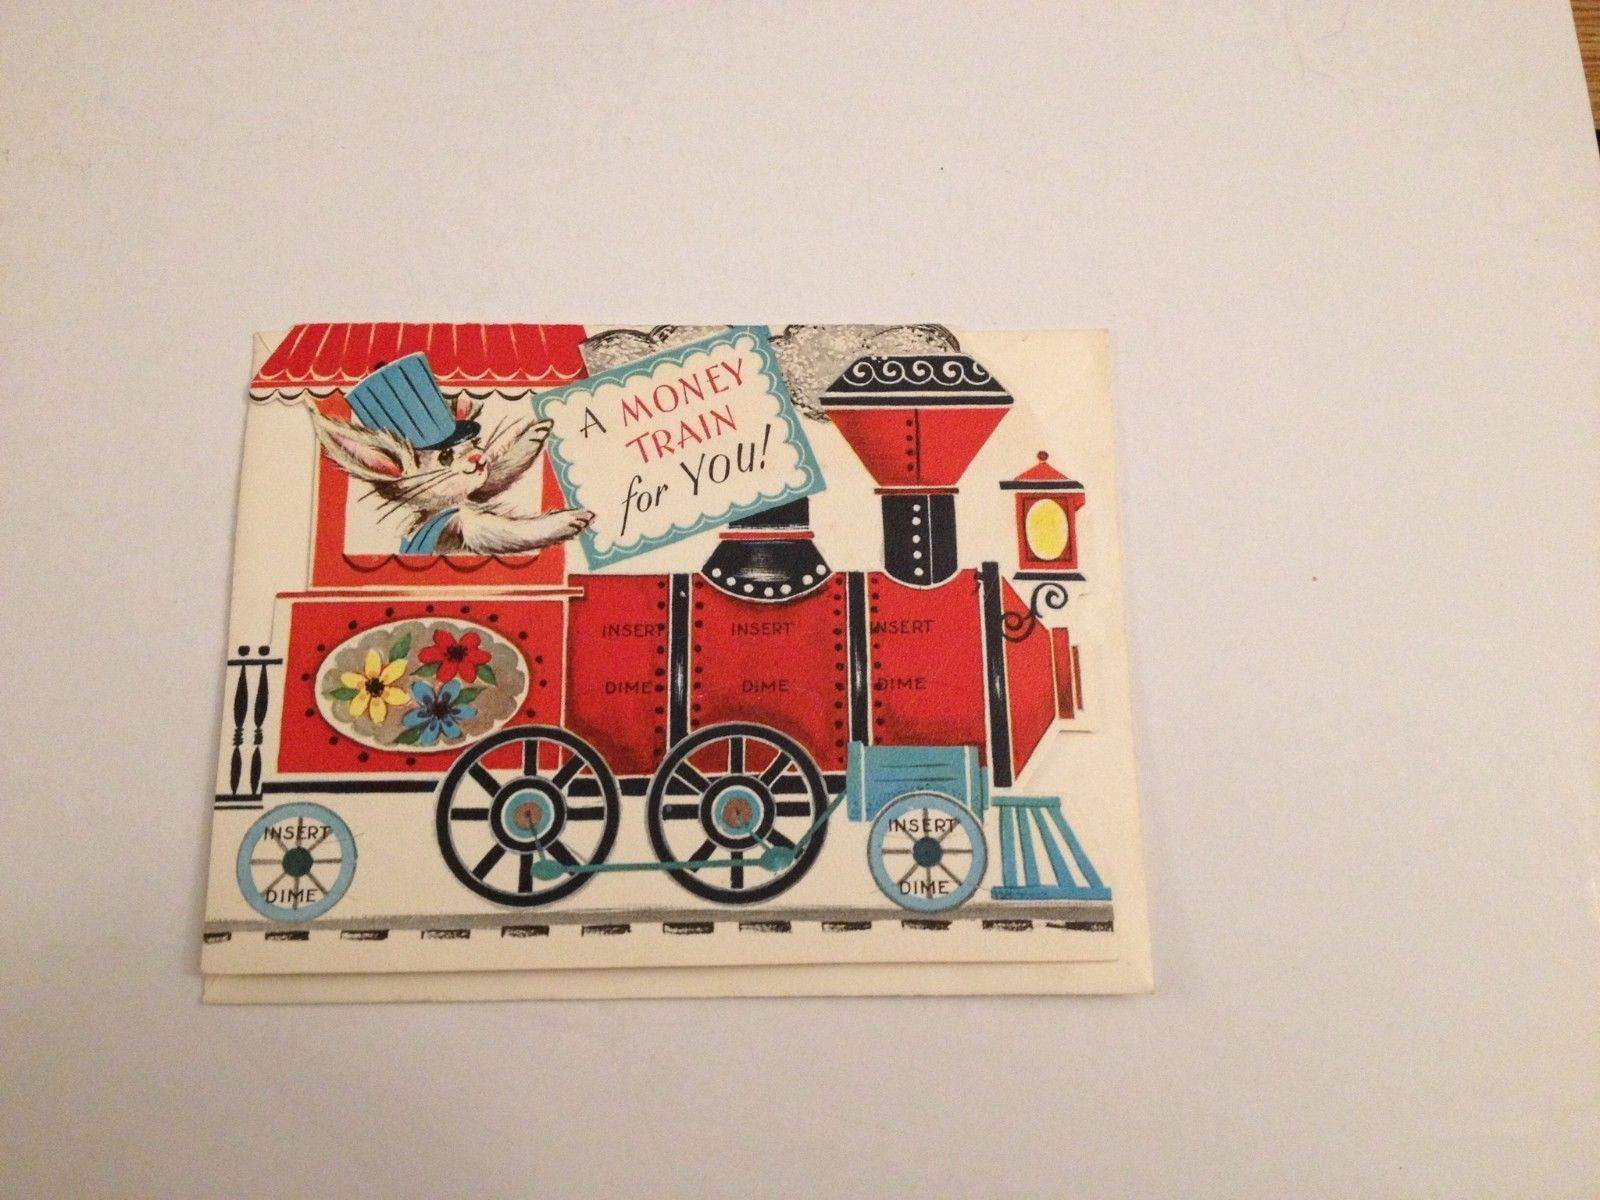 Madeline S Memories Vintage Christmas Cards: Vintage Greeting Card Money Train Coin Holder Dime Bunny